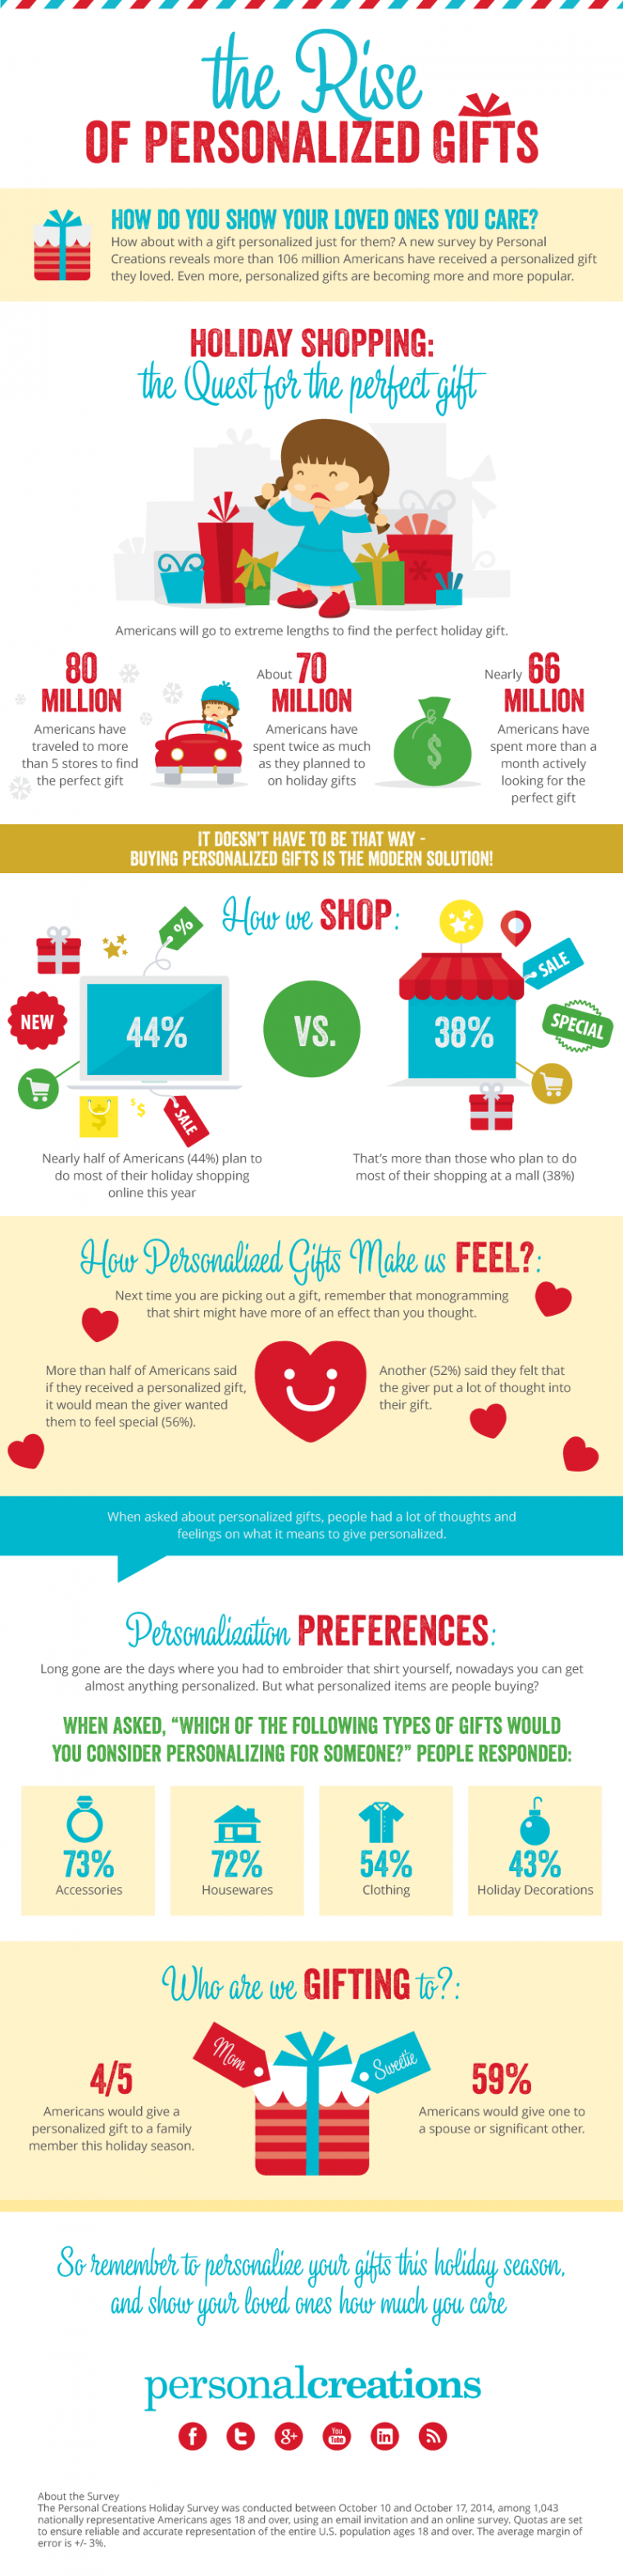 The Rise of Personalized Gifting